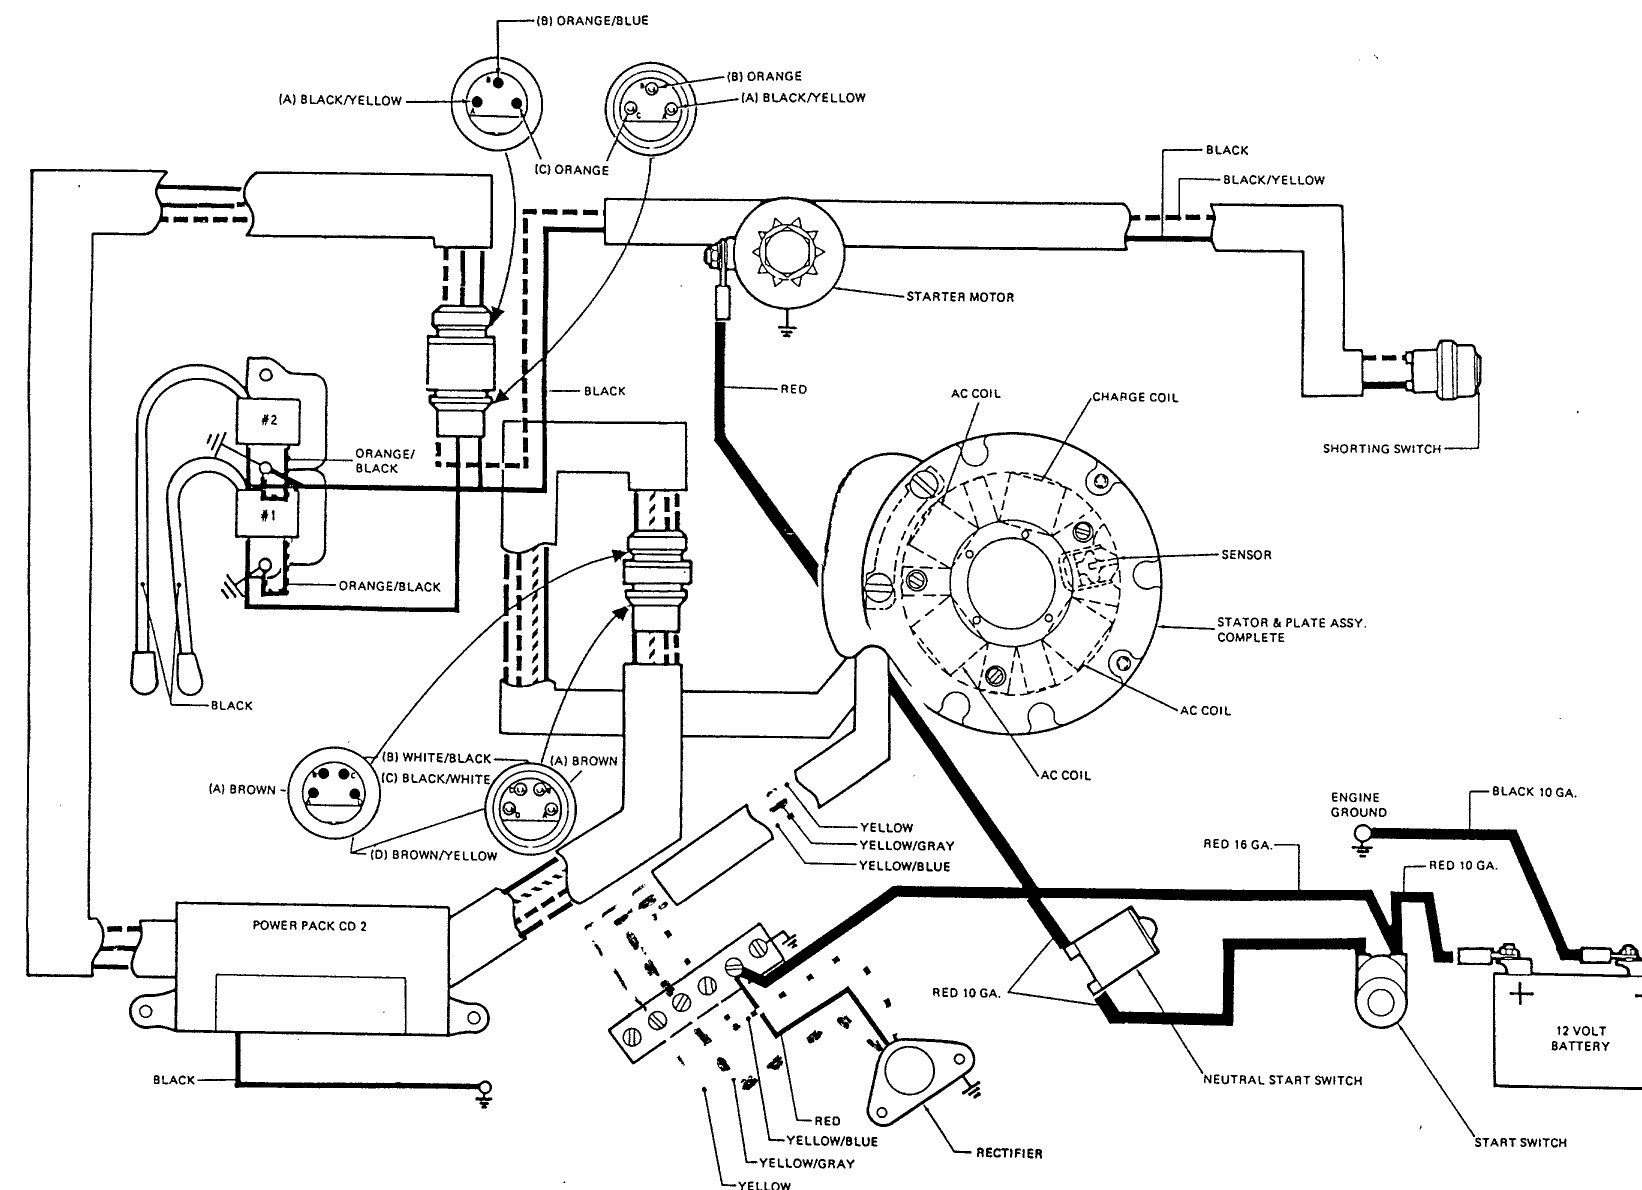 hight resolution of 1988 johnson 9 hp outboard parts diagram wiring wiring diagram 1988 johnson 9 hp outboard parts diagram wiring